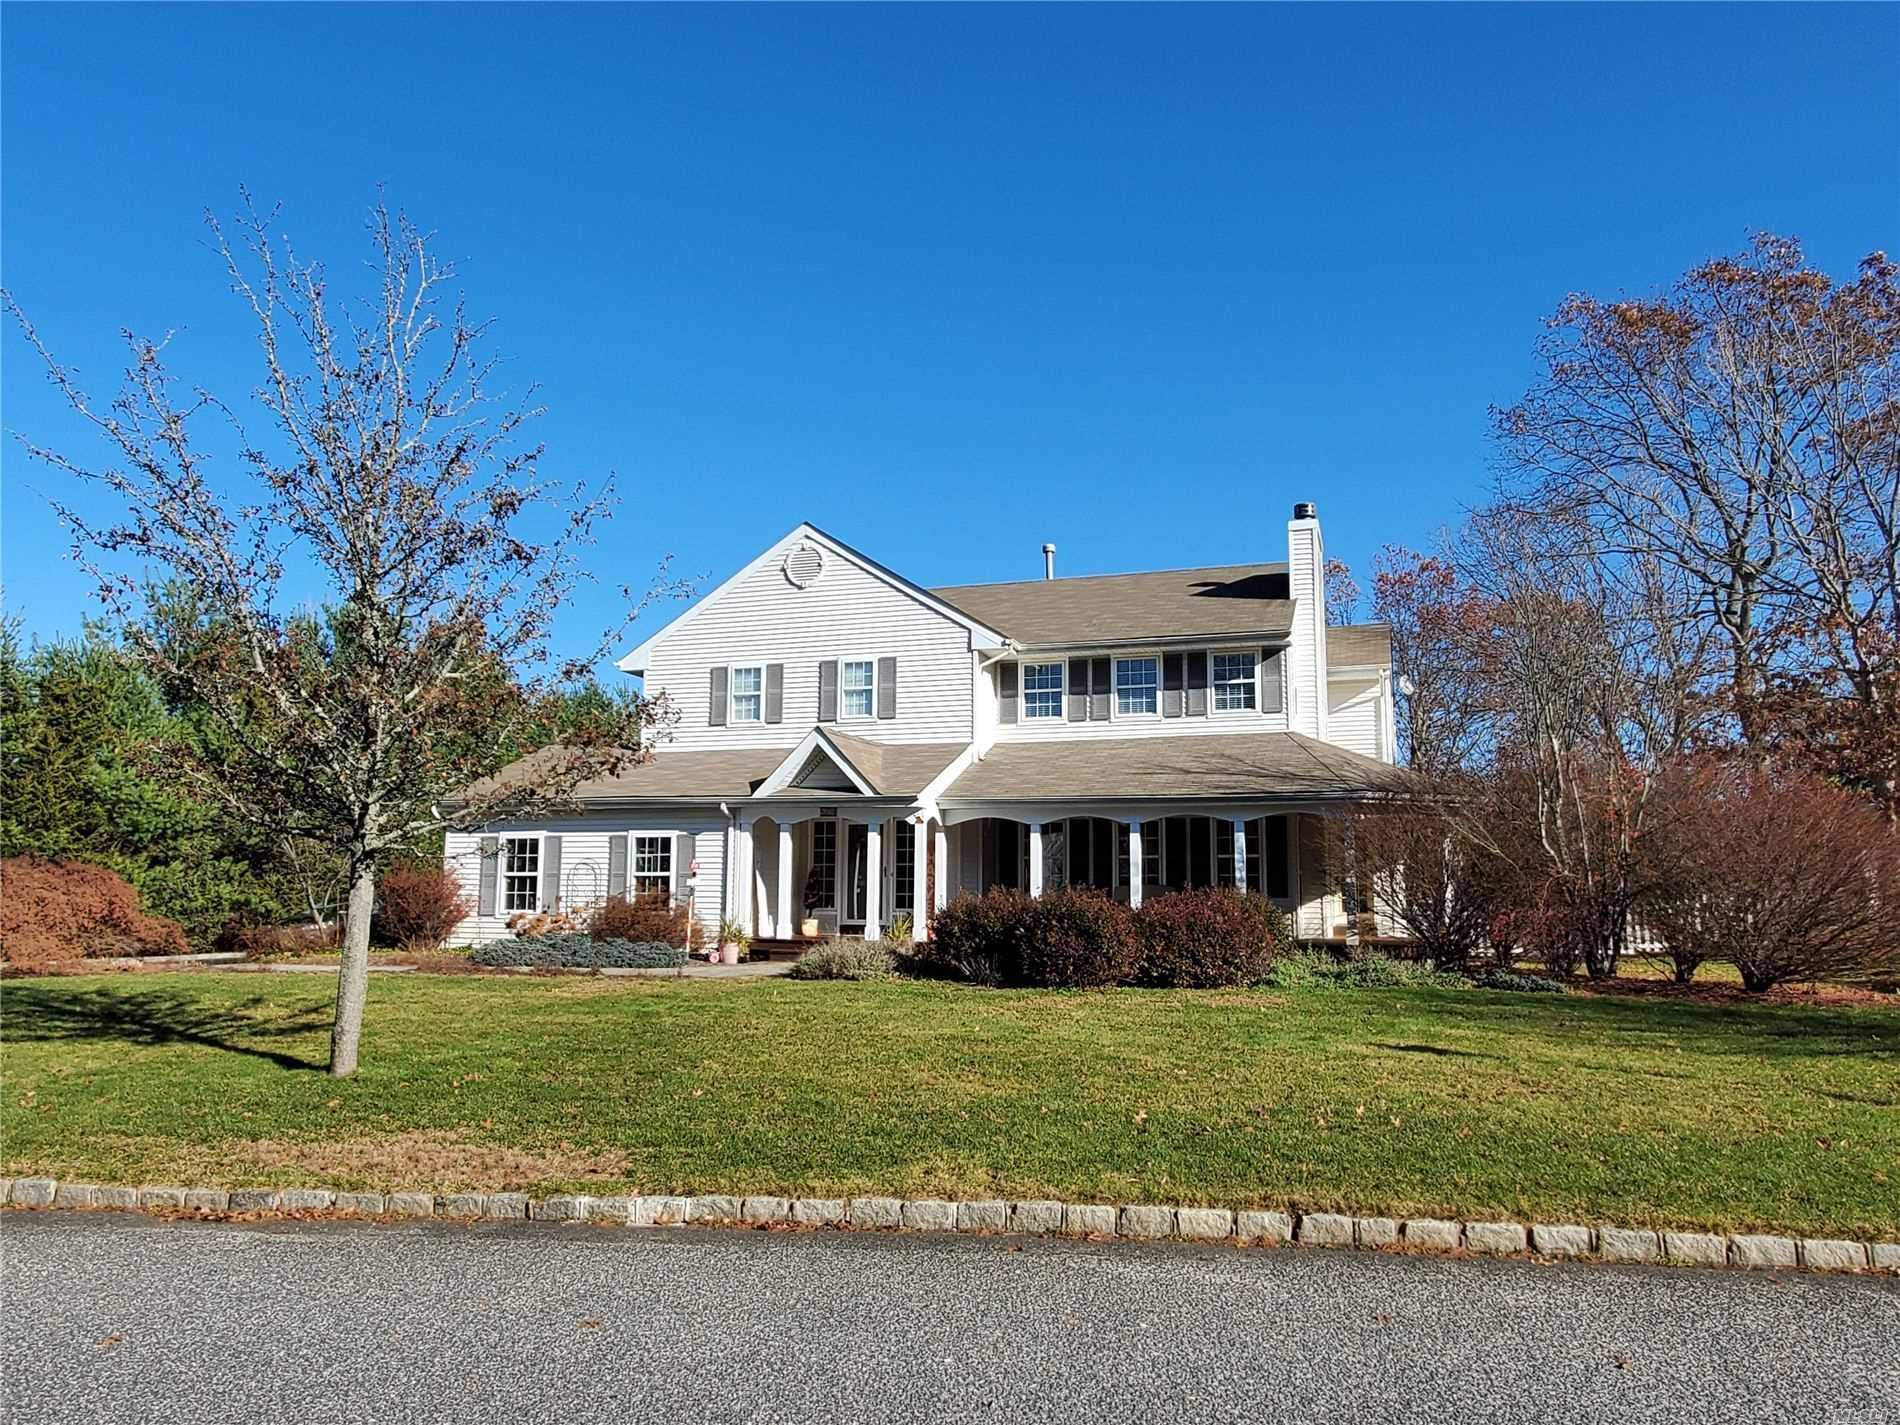 45 Fieldhouse Avenue, East Setauket, NY 11733 - MLS#: 3210356